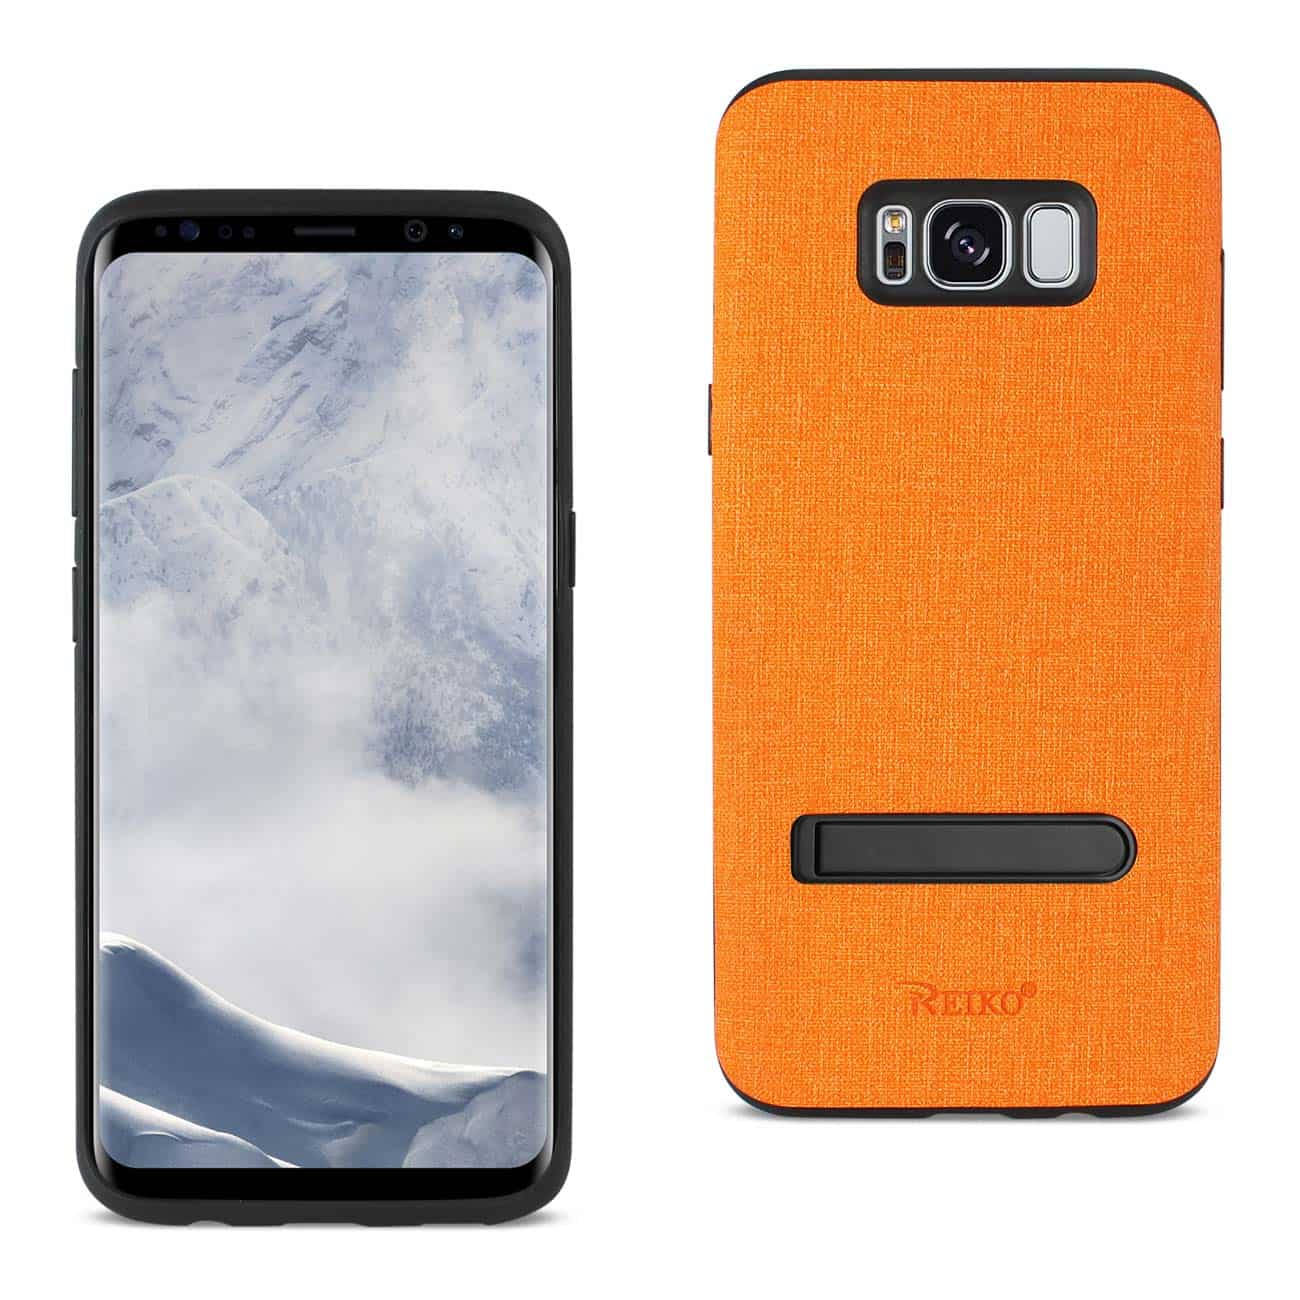 SAMSUNG GALAXY S8 EDGE/ S8 PLUS DENIM TEXTURE TPU PROTECTOR COVER IN ORANGE